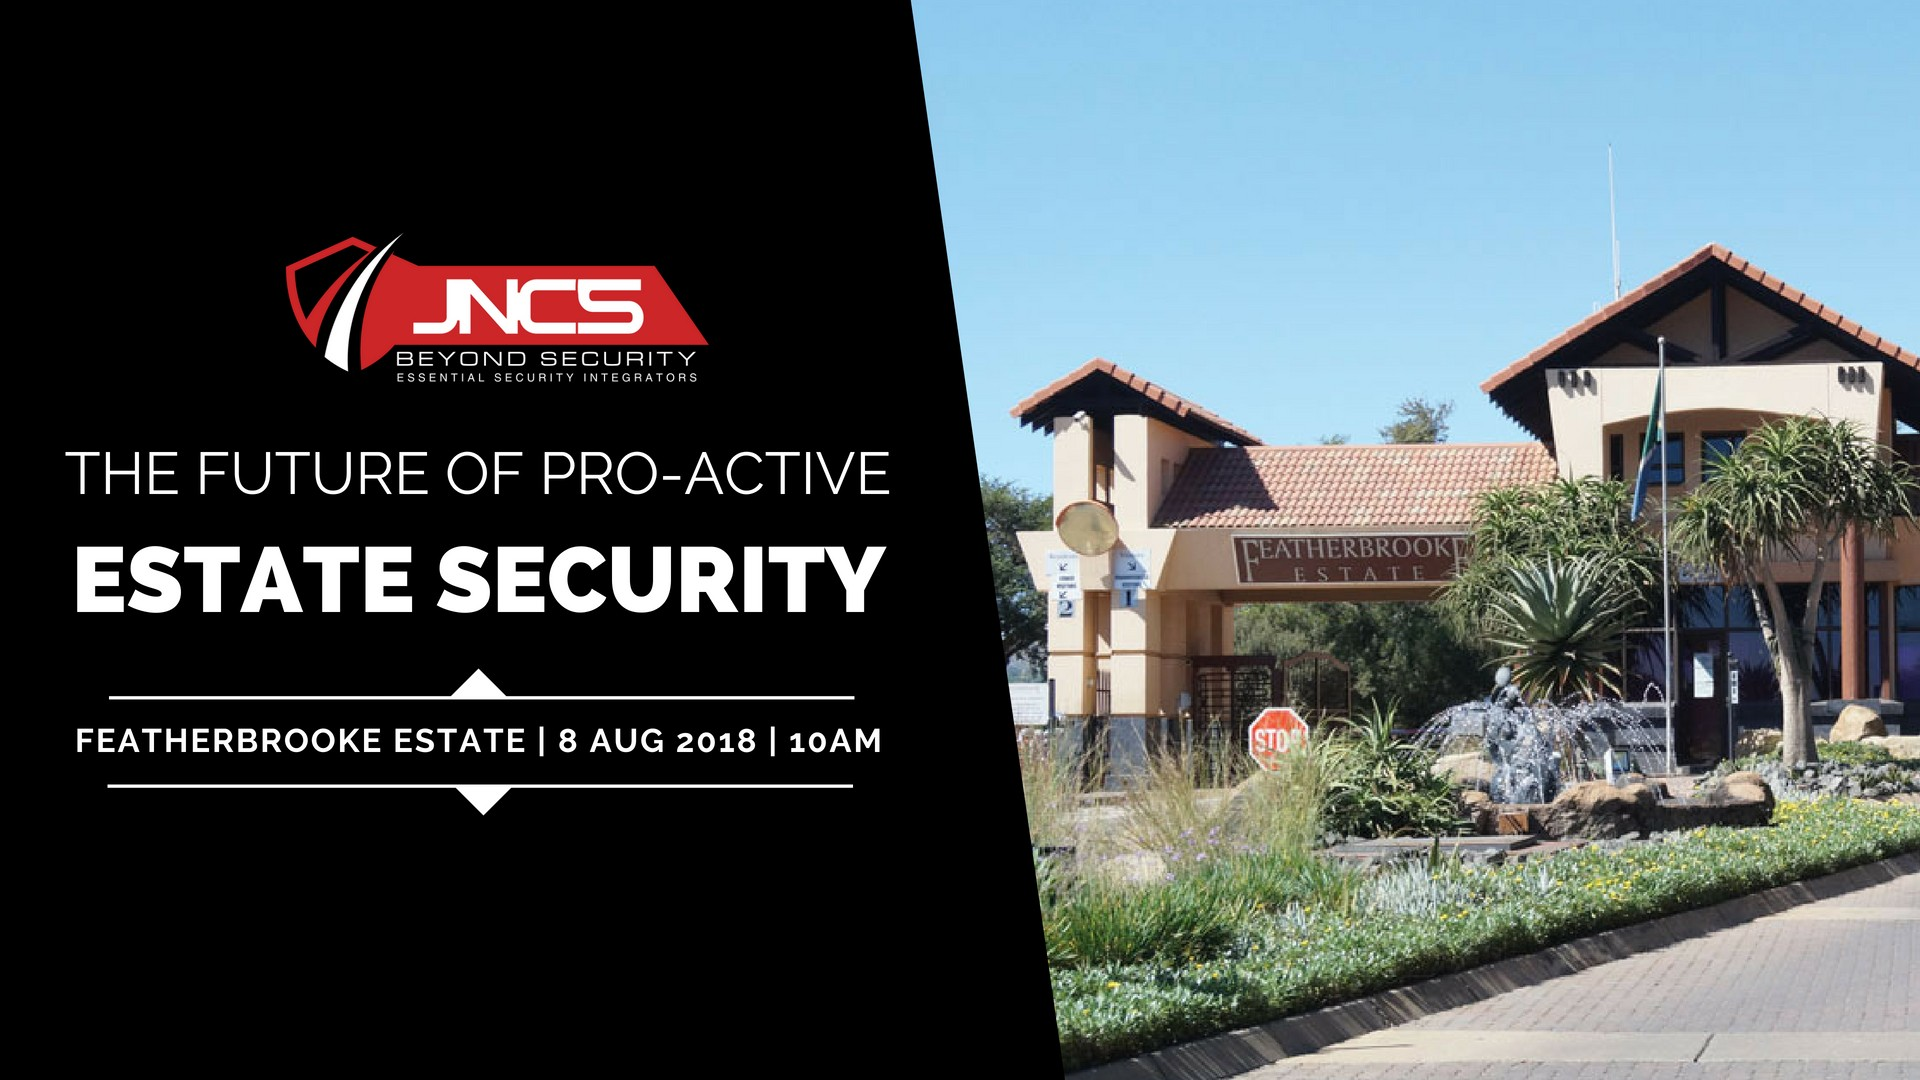 JNCS EVENT - JNCS Beyond Security presents the future of proactive estate security